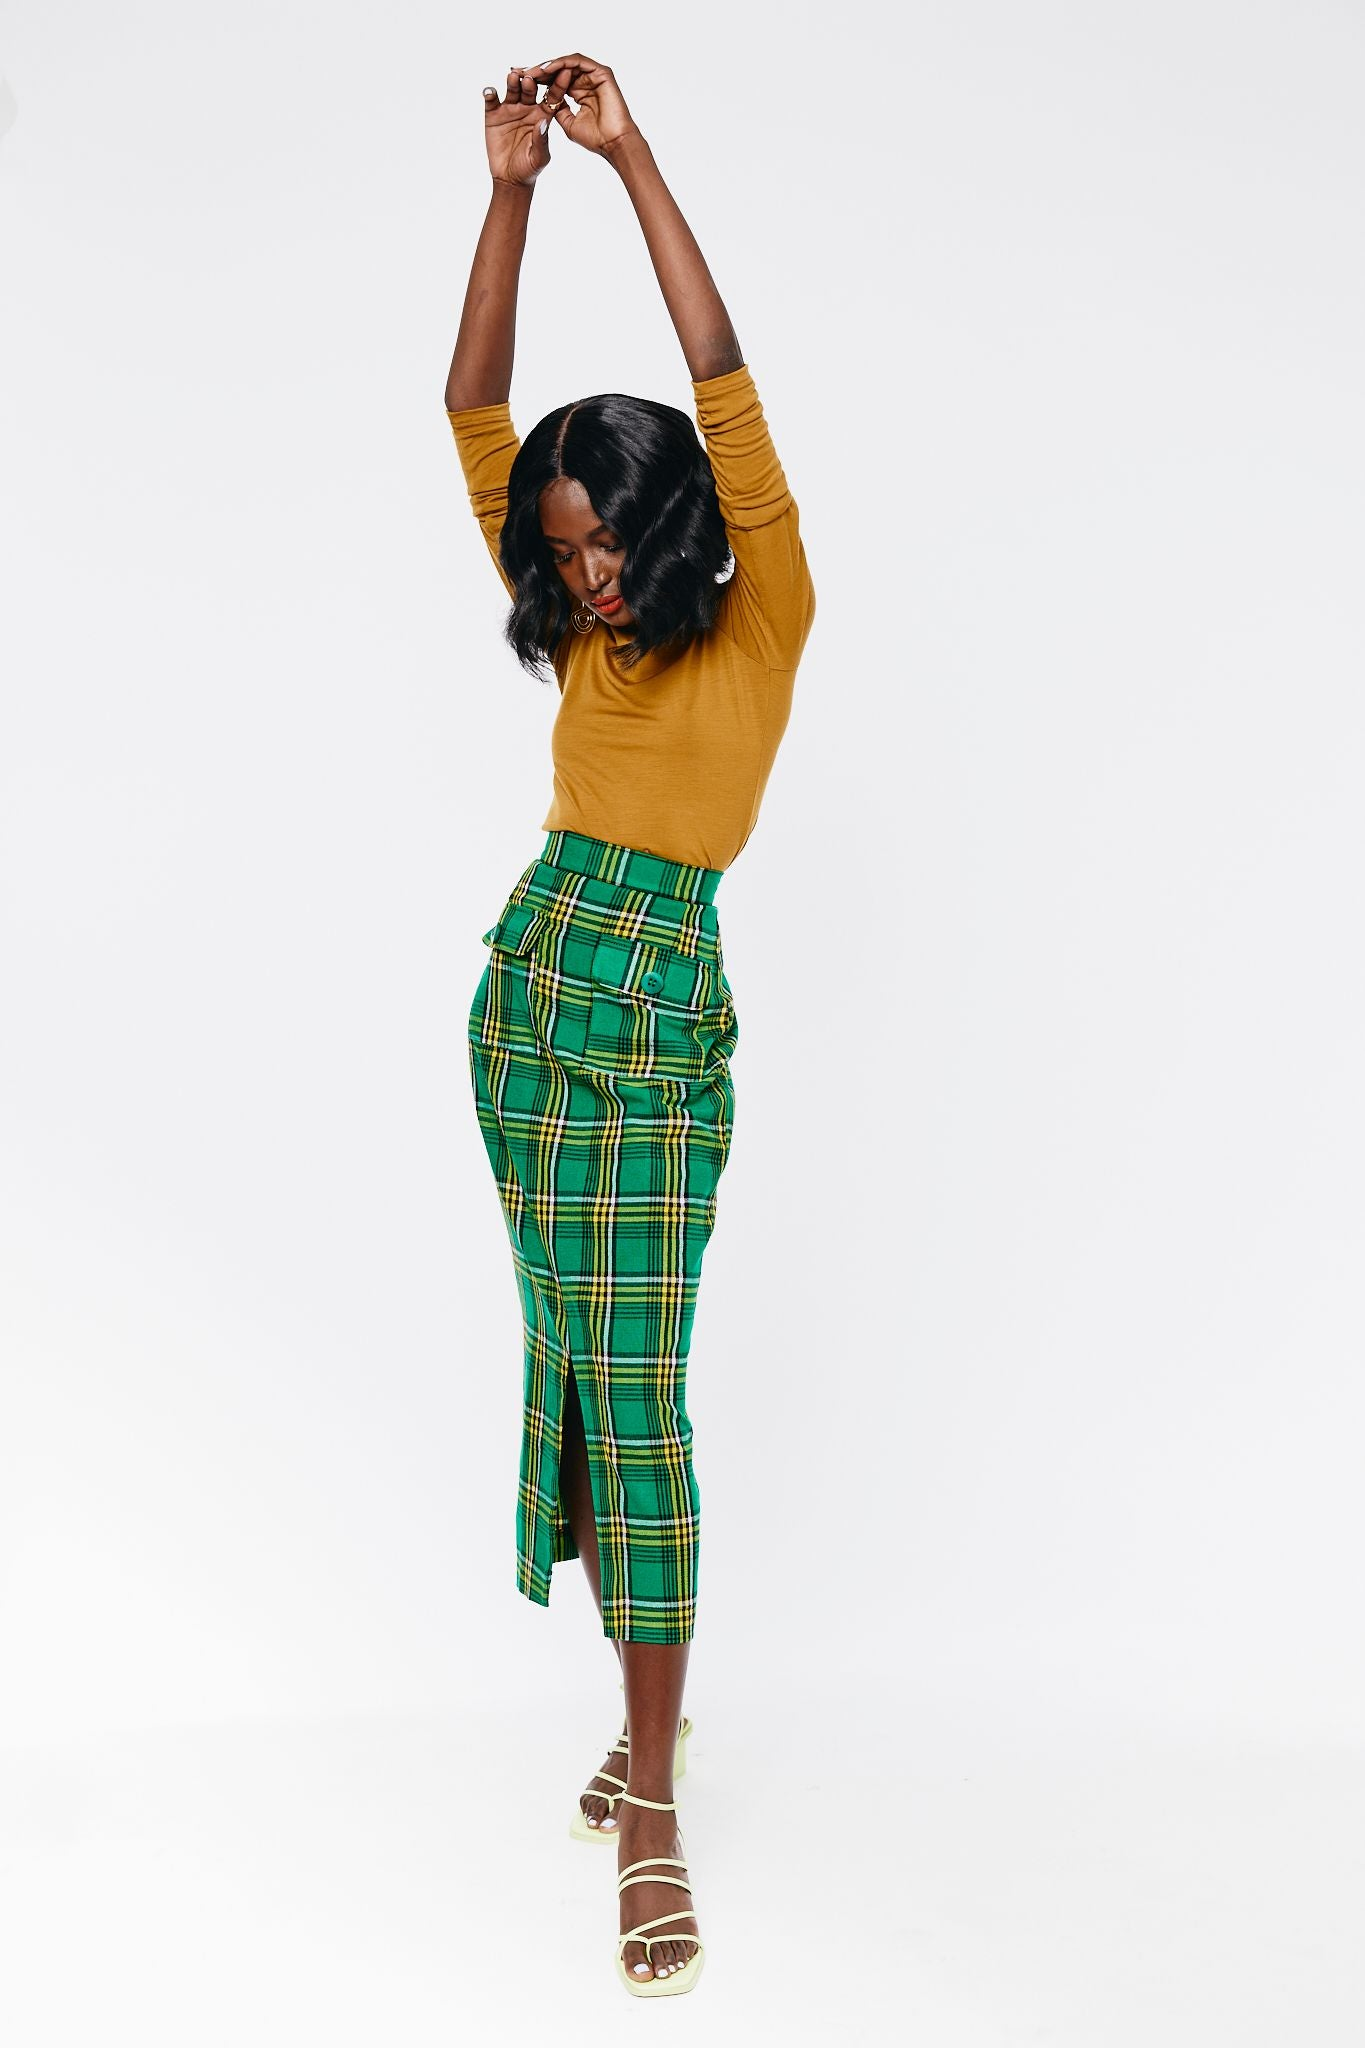 Utambulisho High waisted Skirt